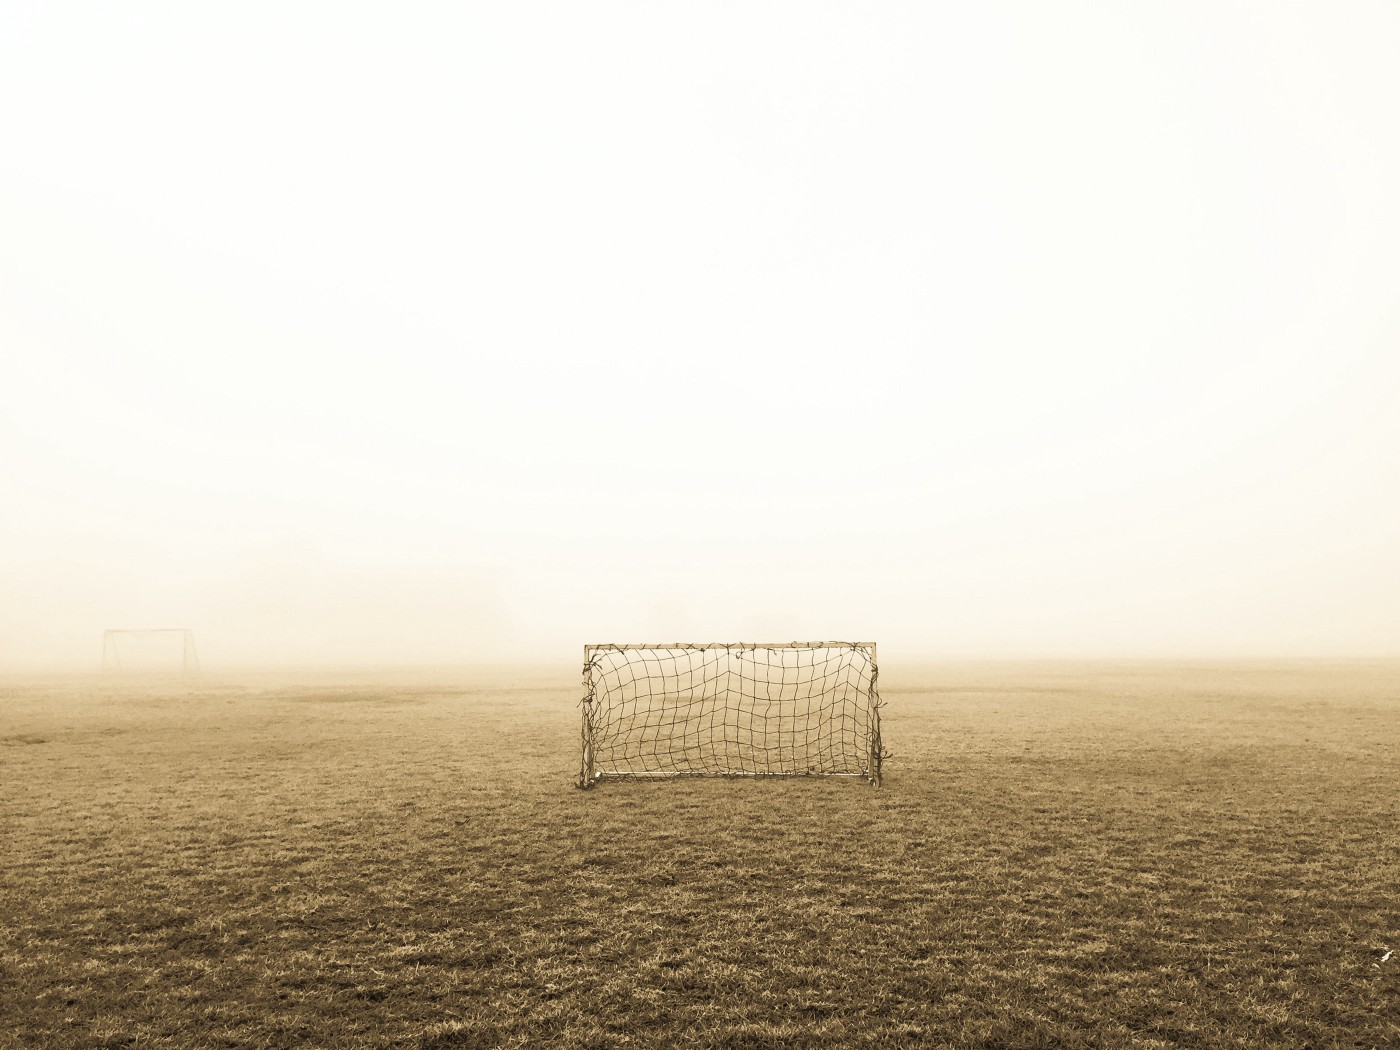 Soccer Goal in the middle of a field